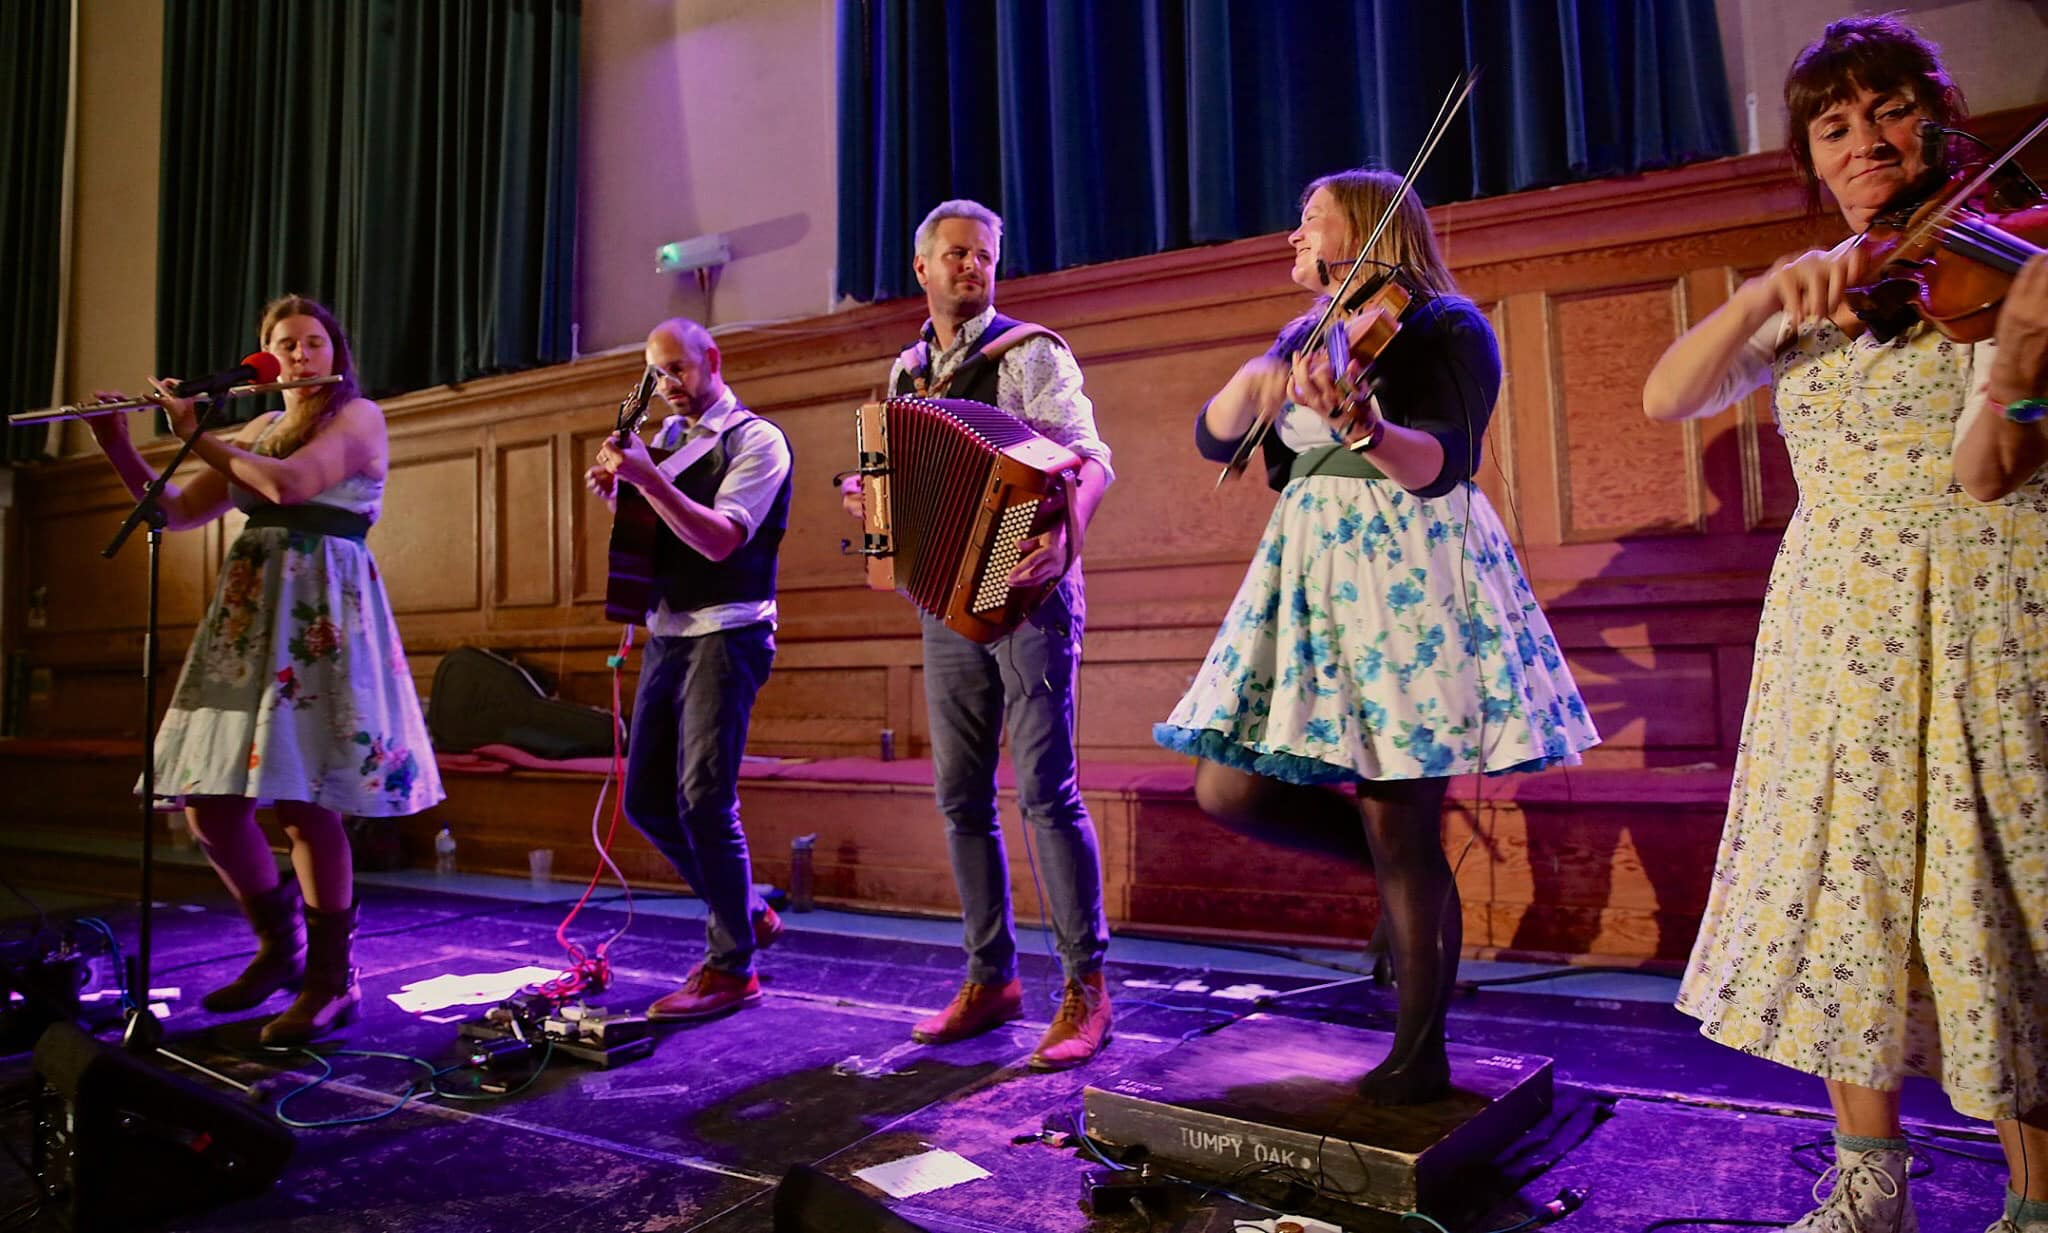 Stumpy Oak at Cecil Sharp House